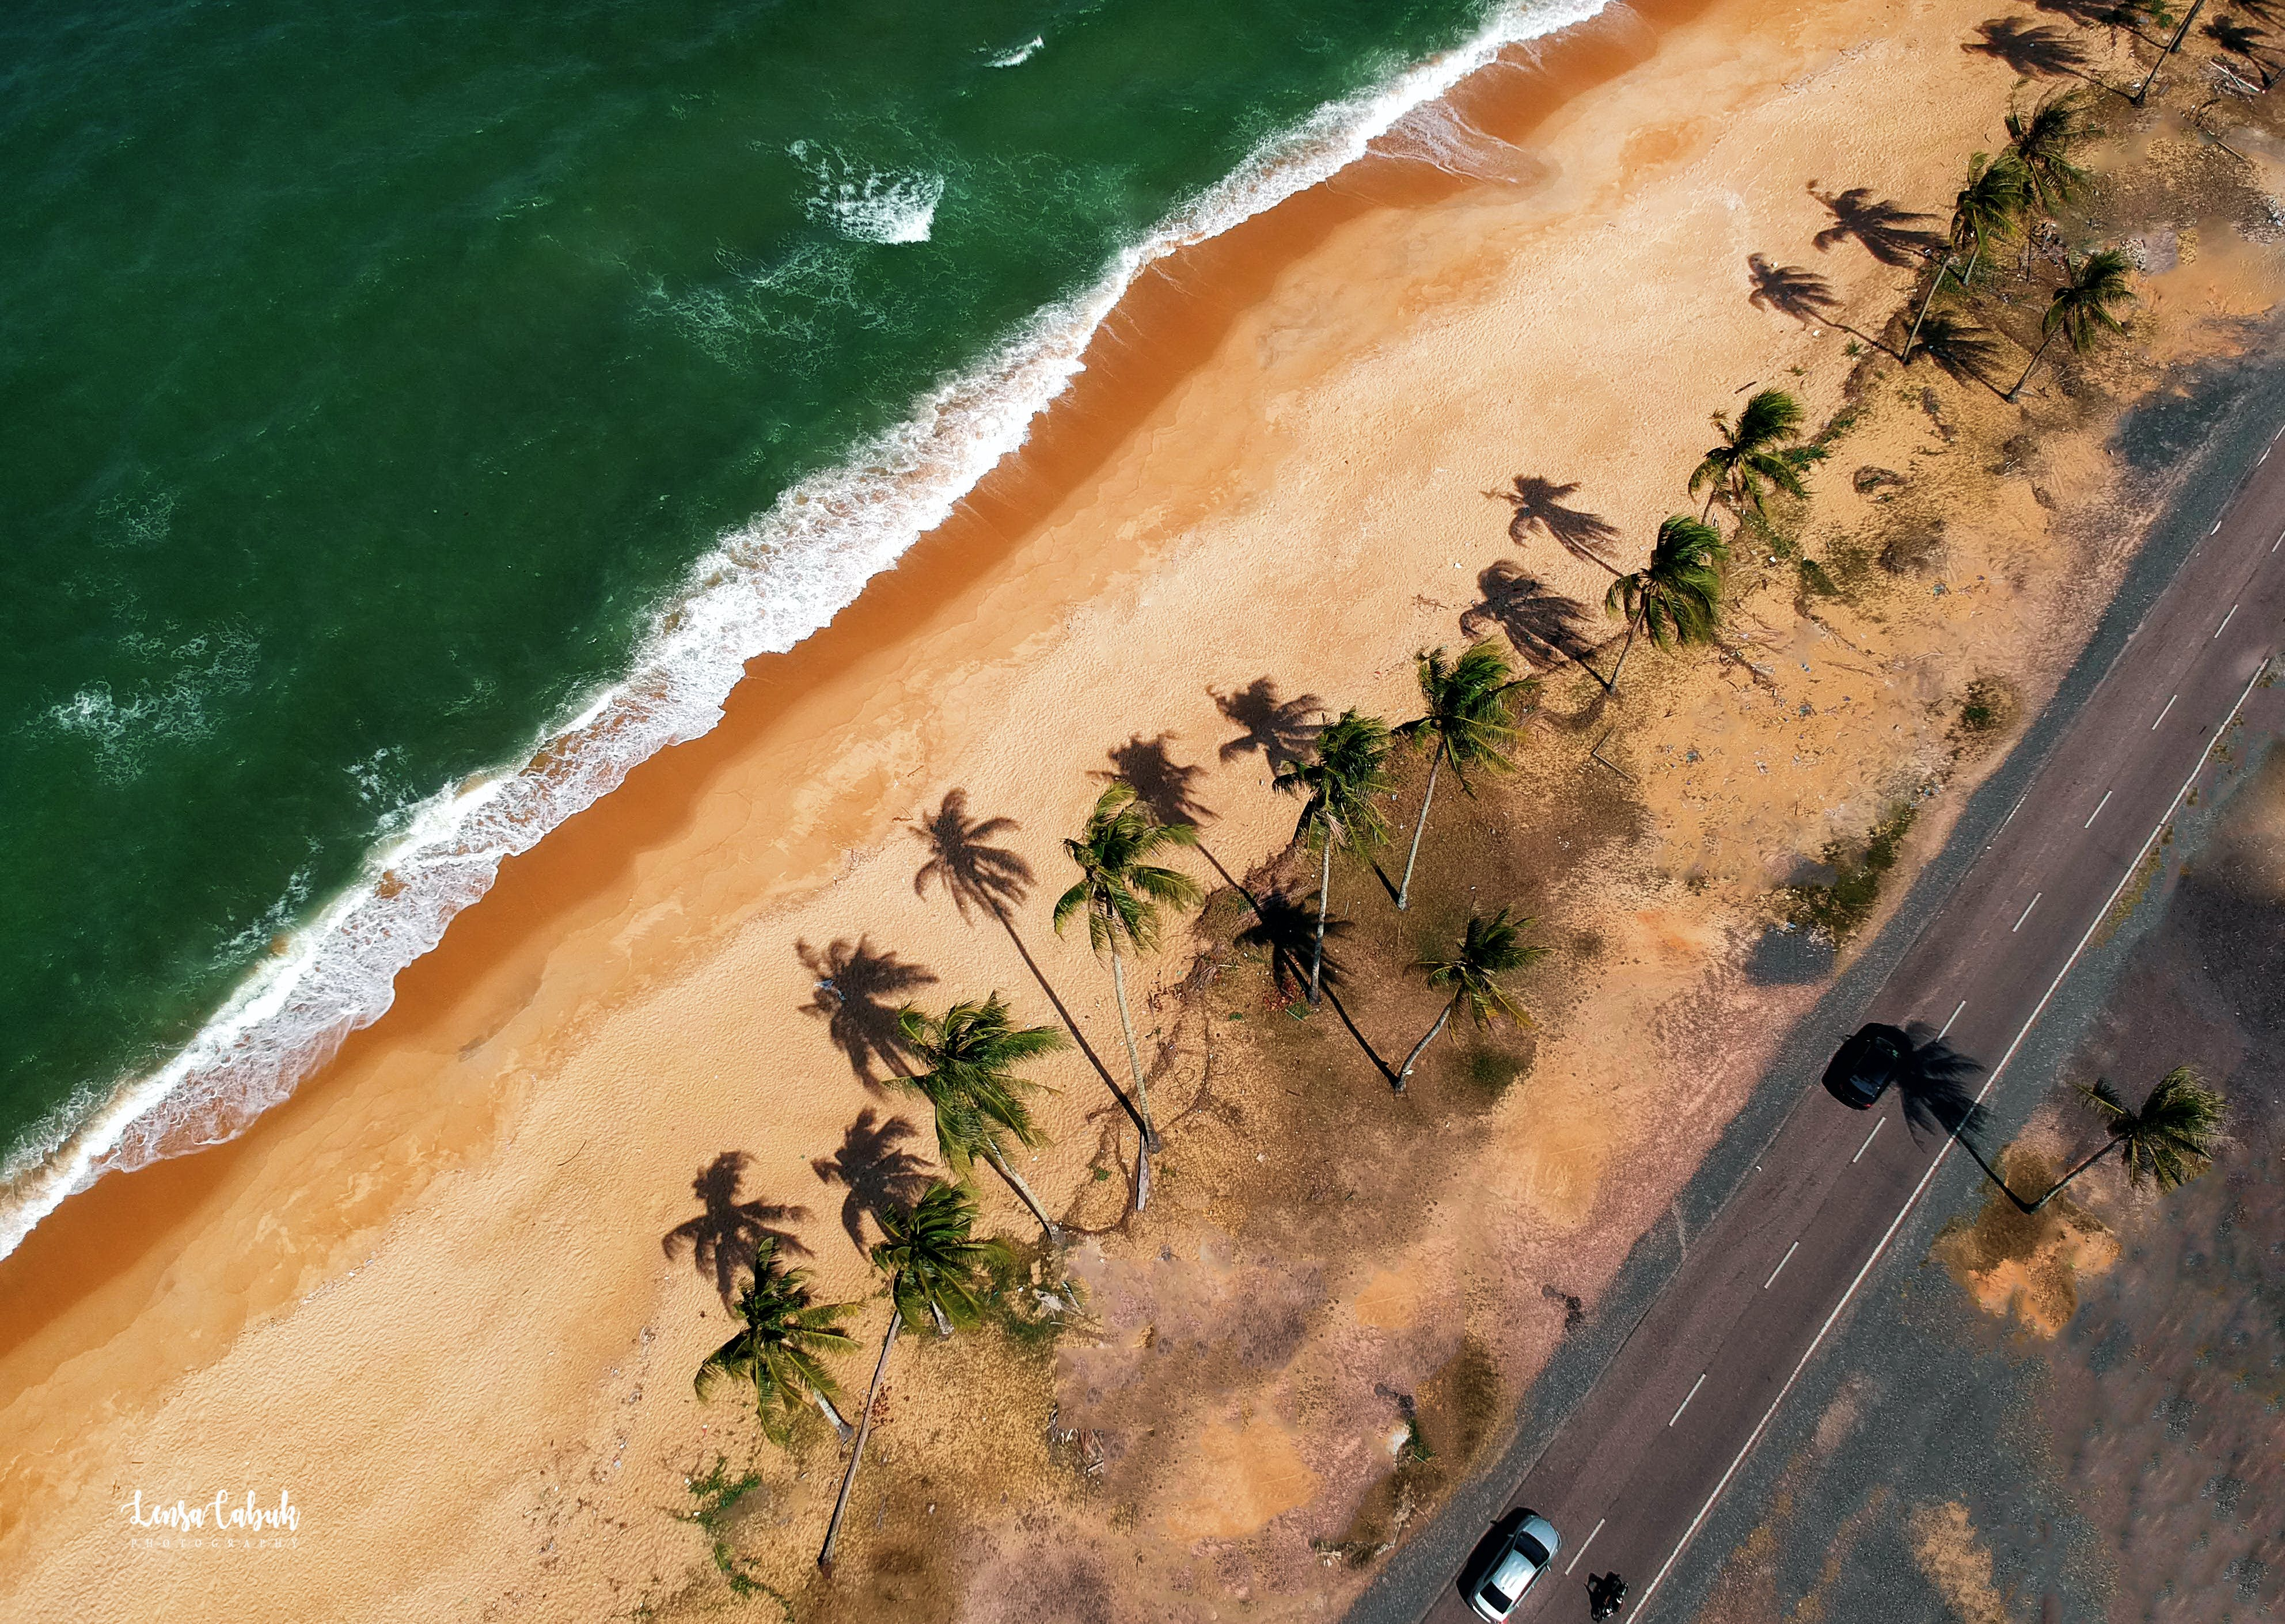 Free stock photo of beach, coconut tree, aerial view